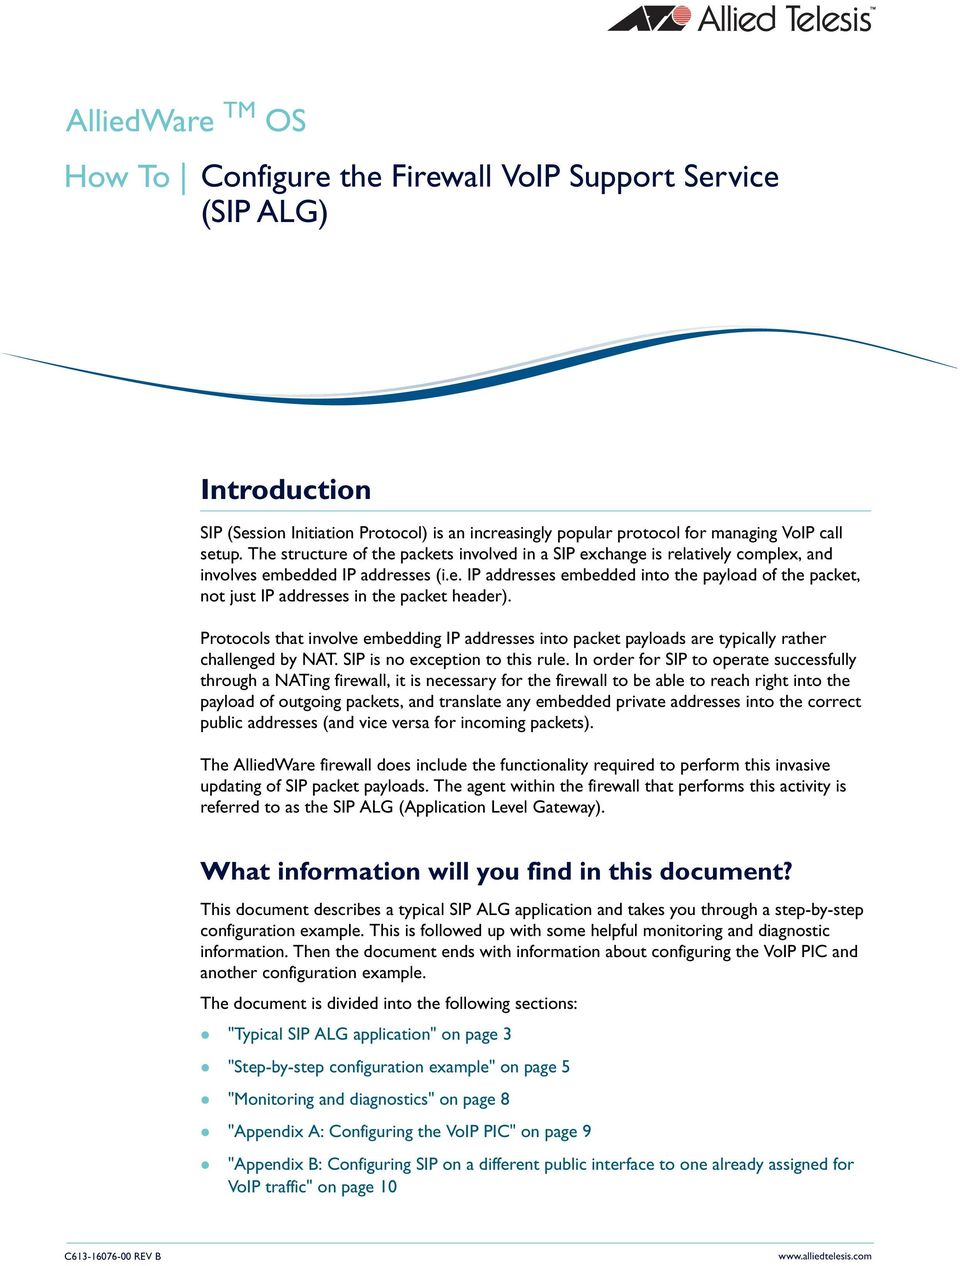 Configure the Firewall VoIP Support Service (SIP ALG) - PDF